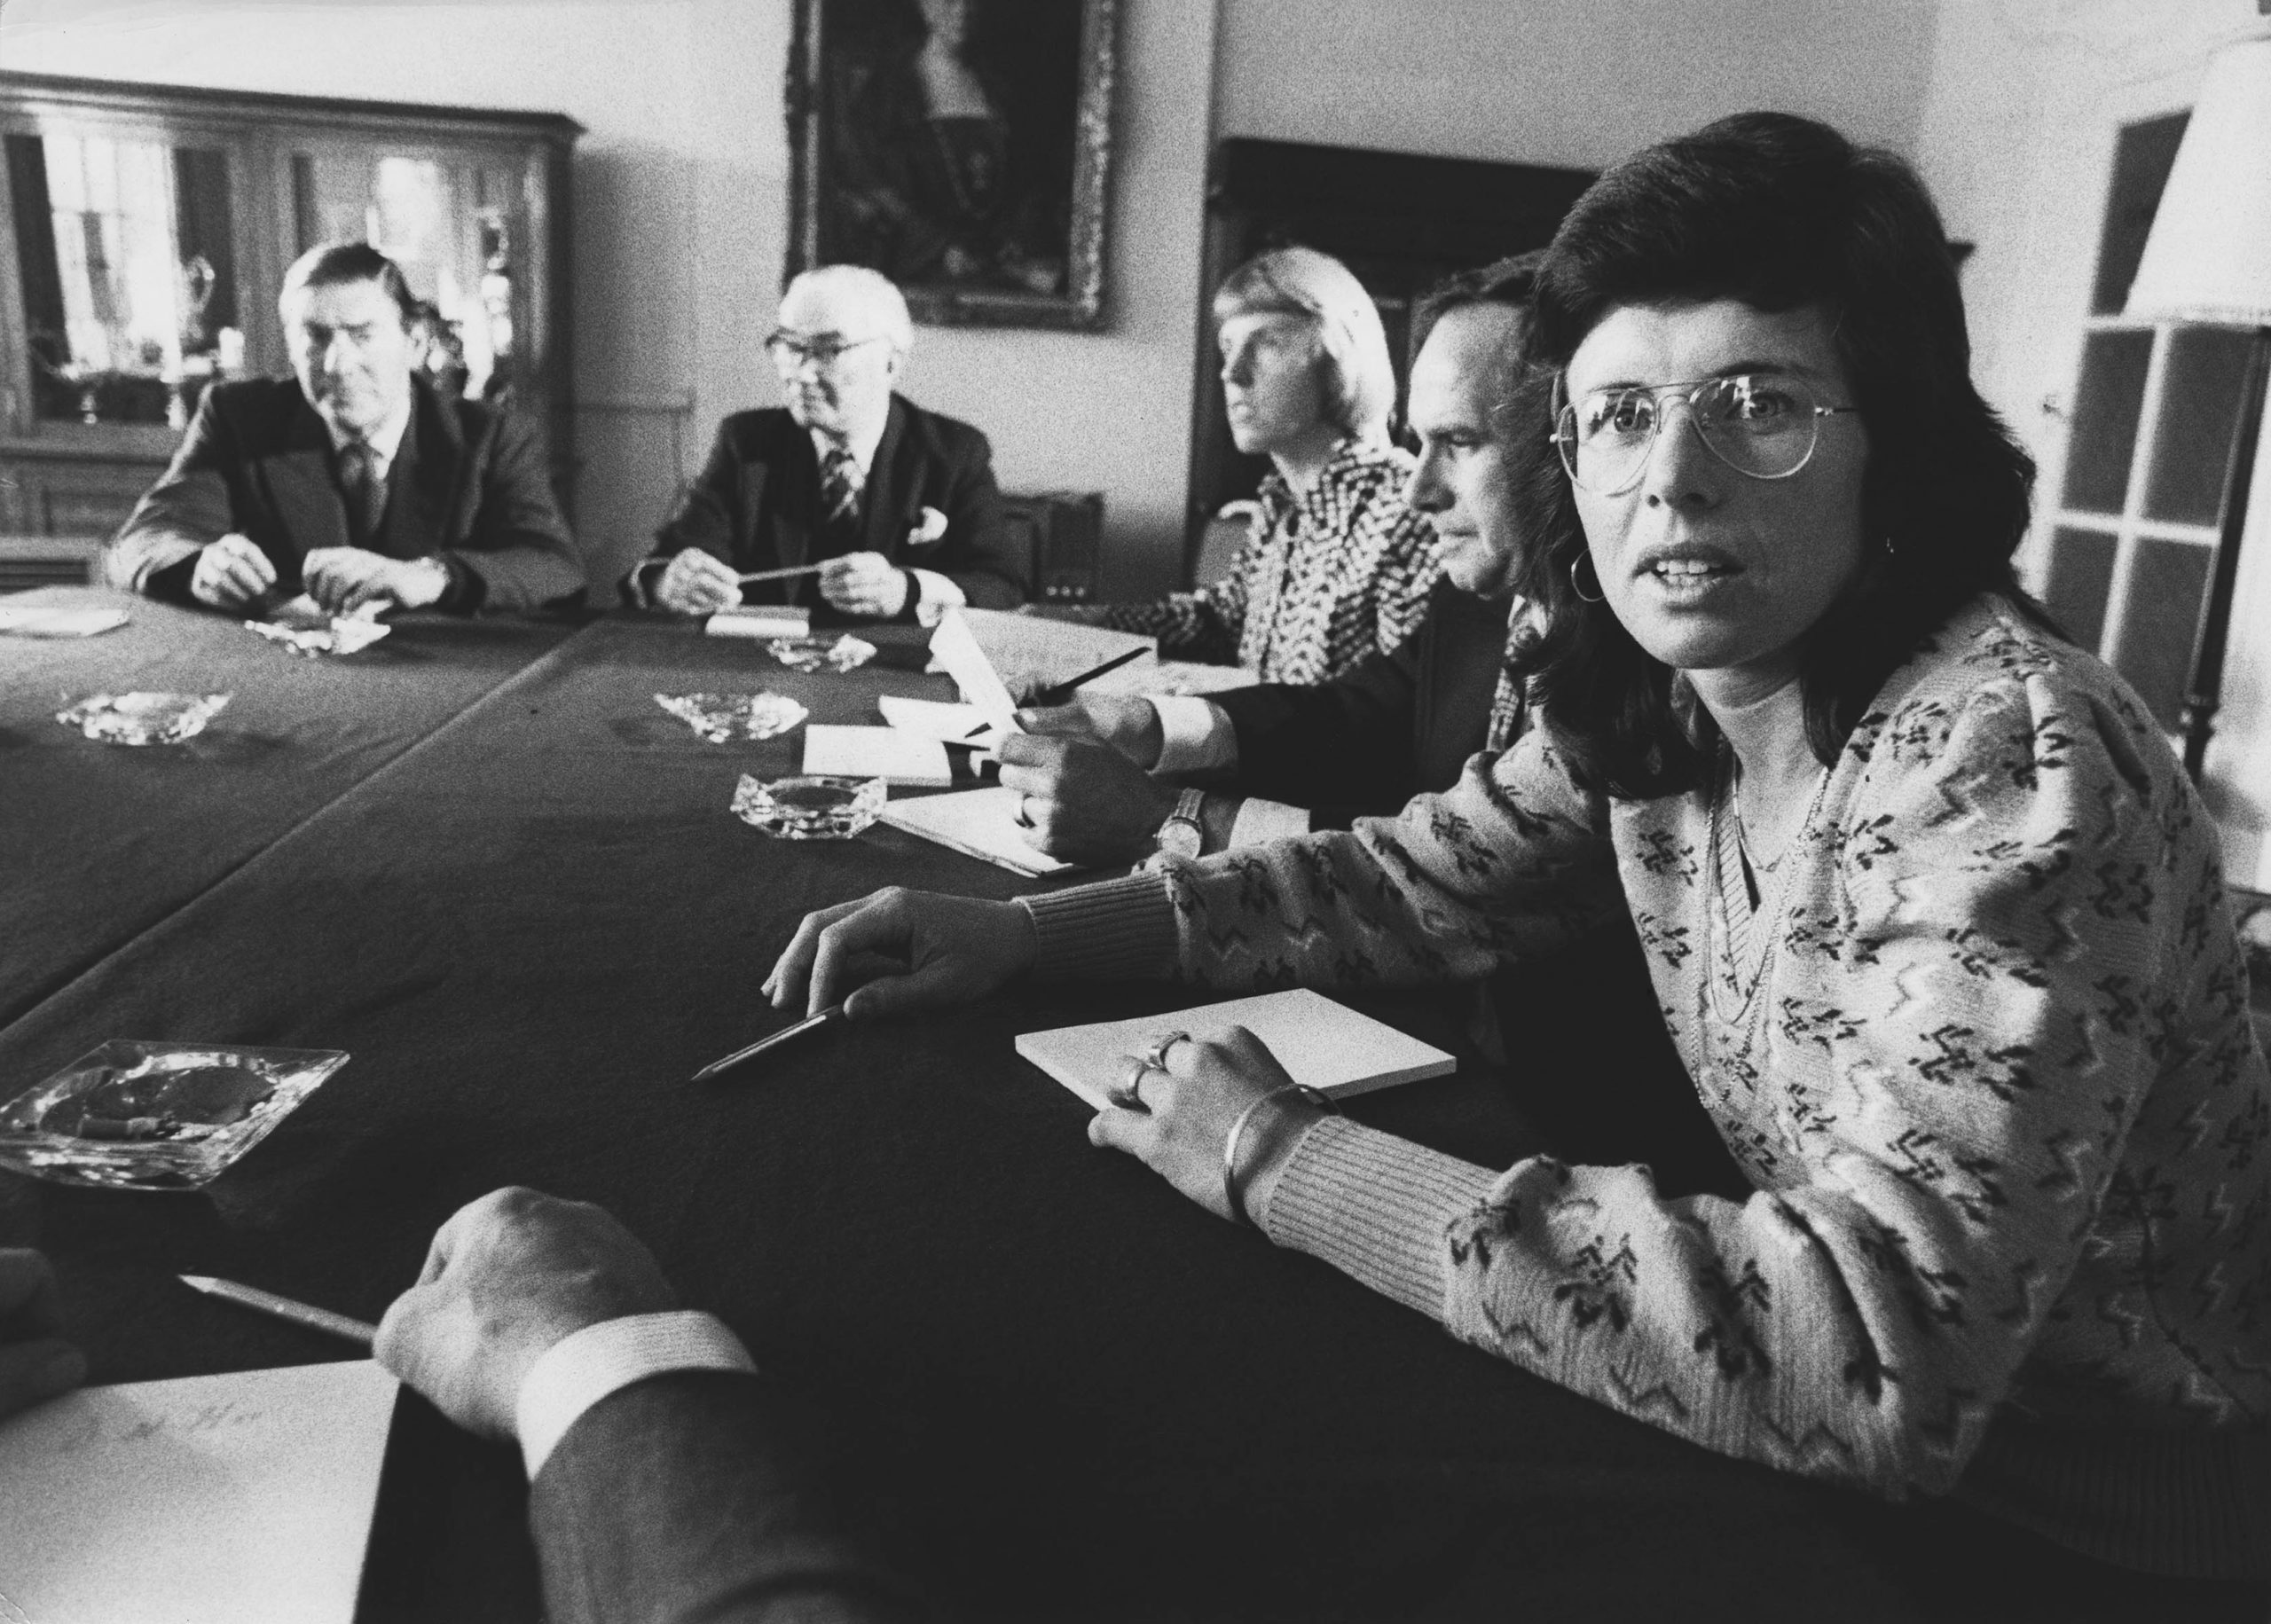 26 February 1975: Women's Tennis Association president Billie Jean King (right) meets with an All England Club committee. The meeting resulted in an increase in prize money for women to 70-80% percent of the men's and the promise of an annual review. King has been advocating for the tours to merge for decades. (Photograph by Daily Express/ Archive Photos/ Getty Images)